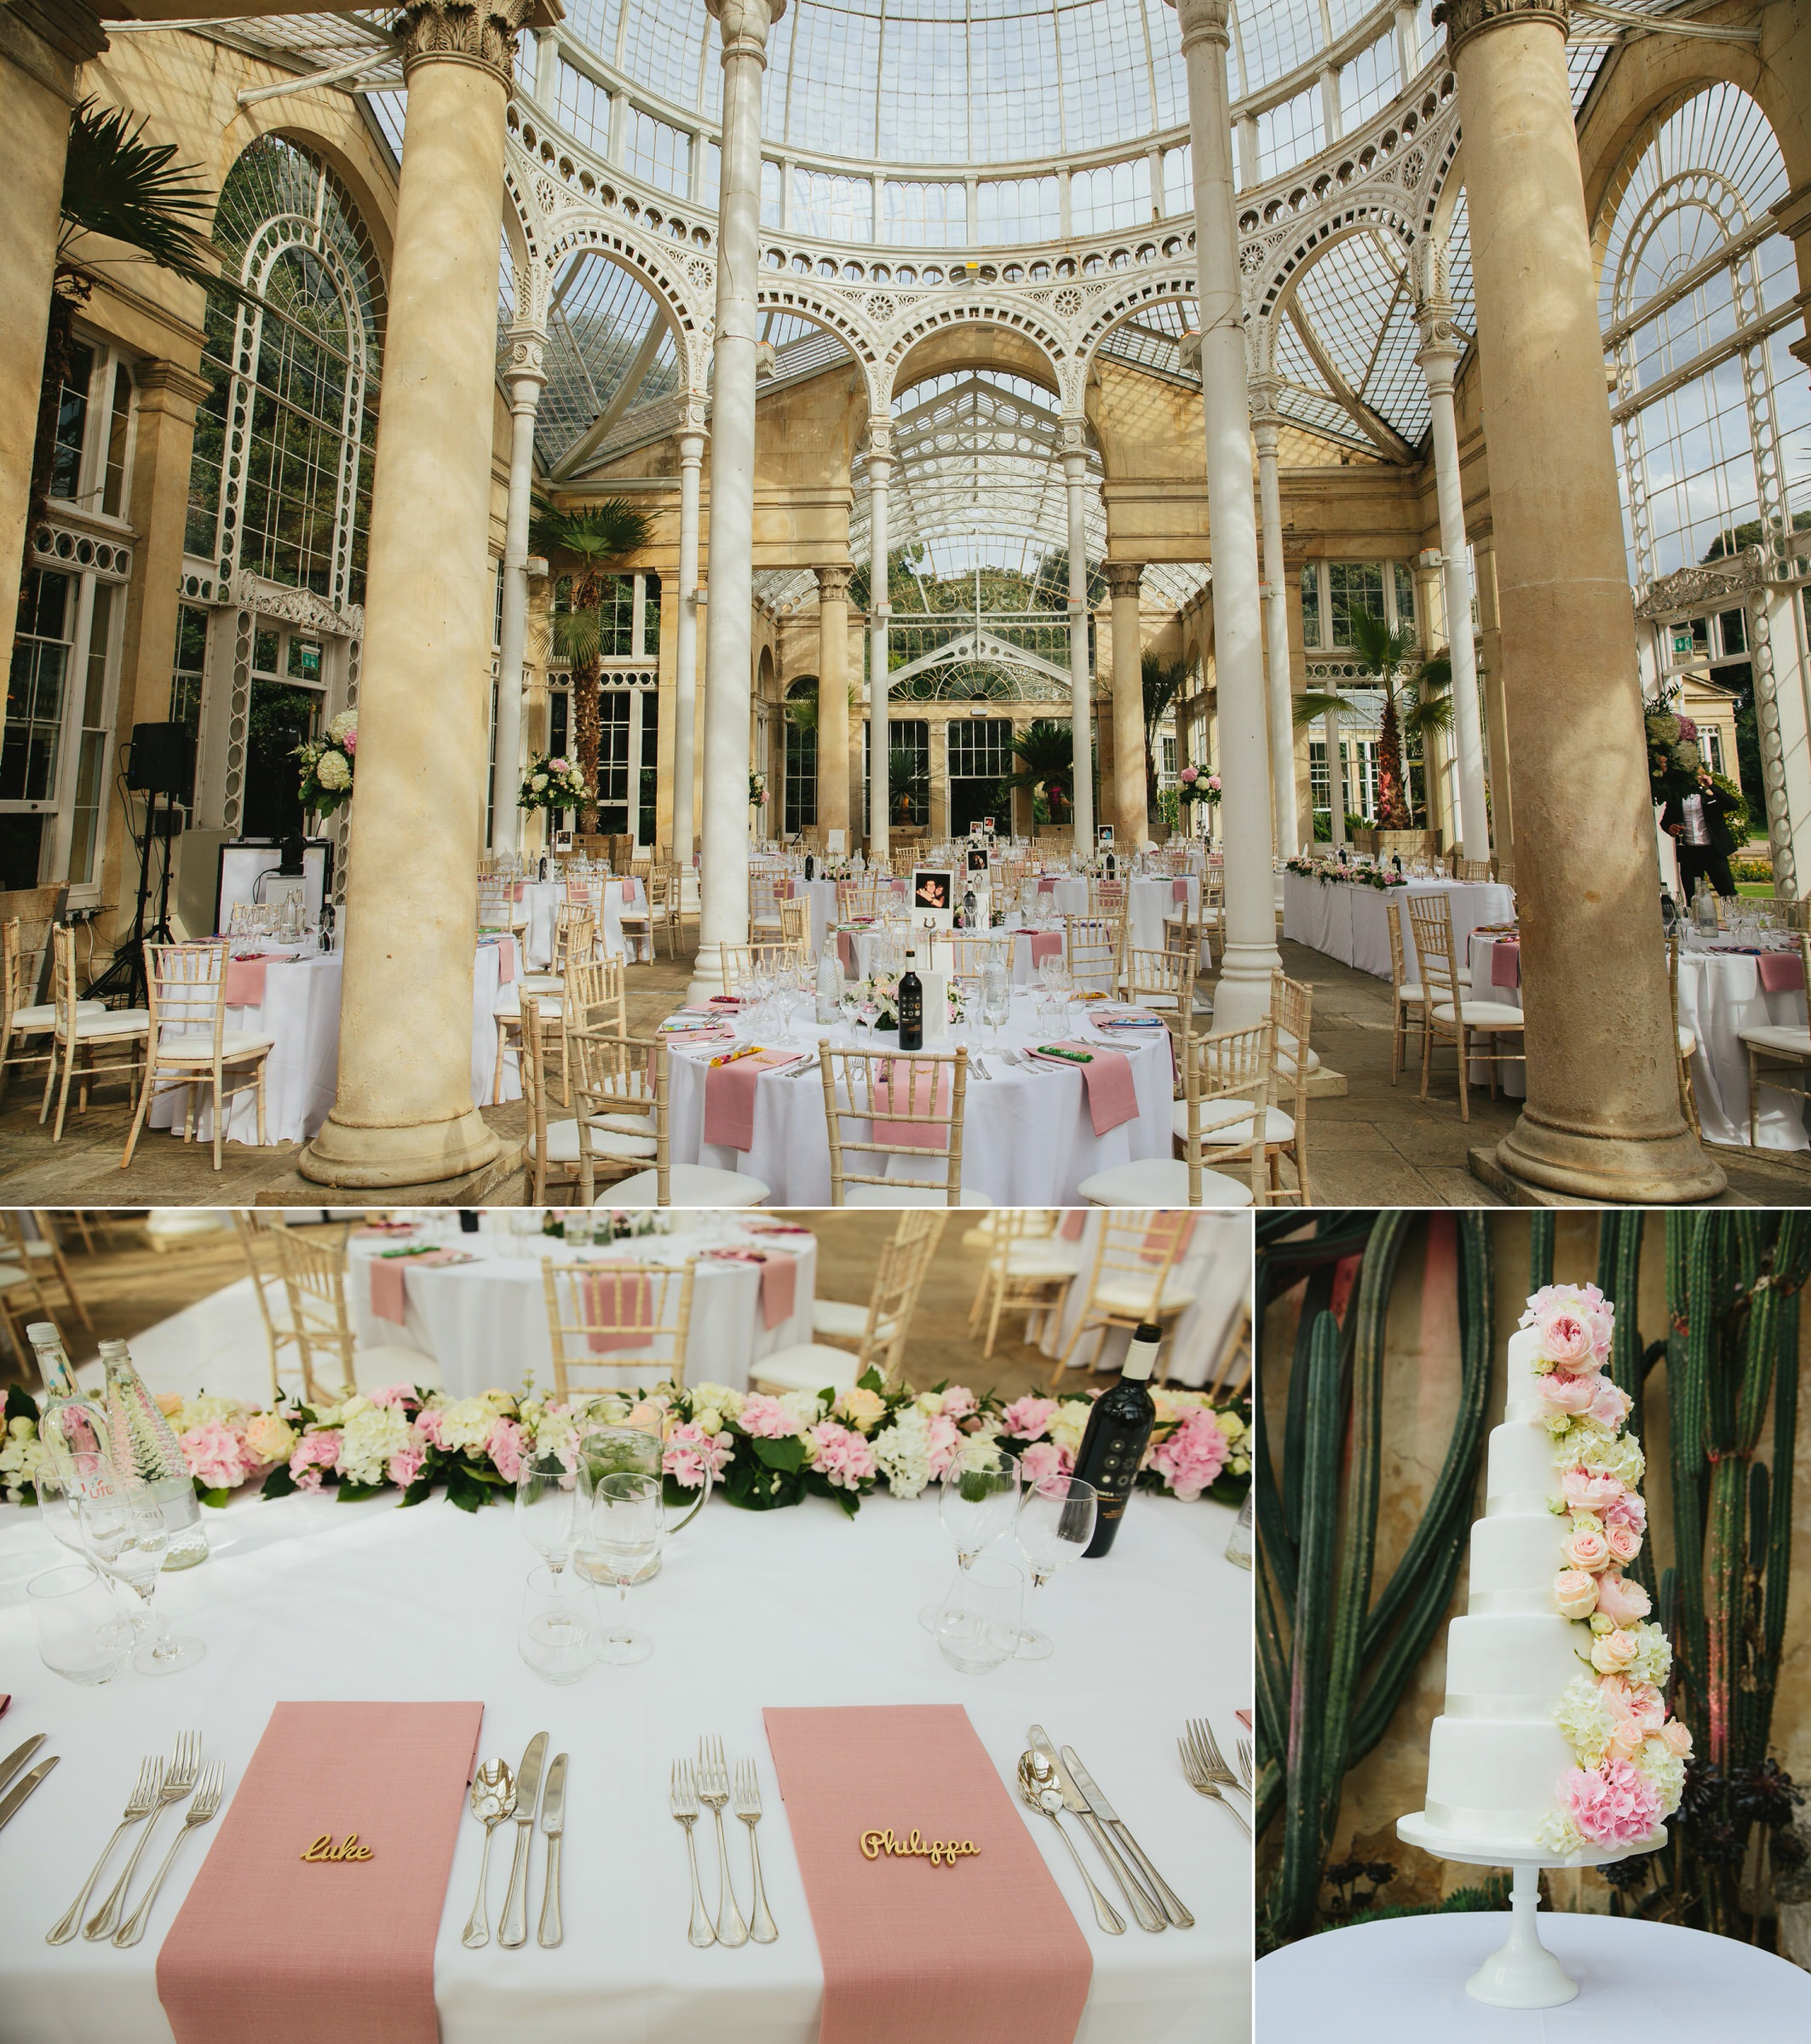 Syon Park wedding photographer - Pip & Luke